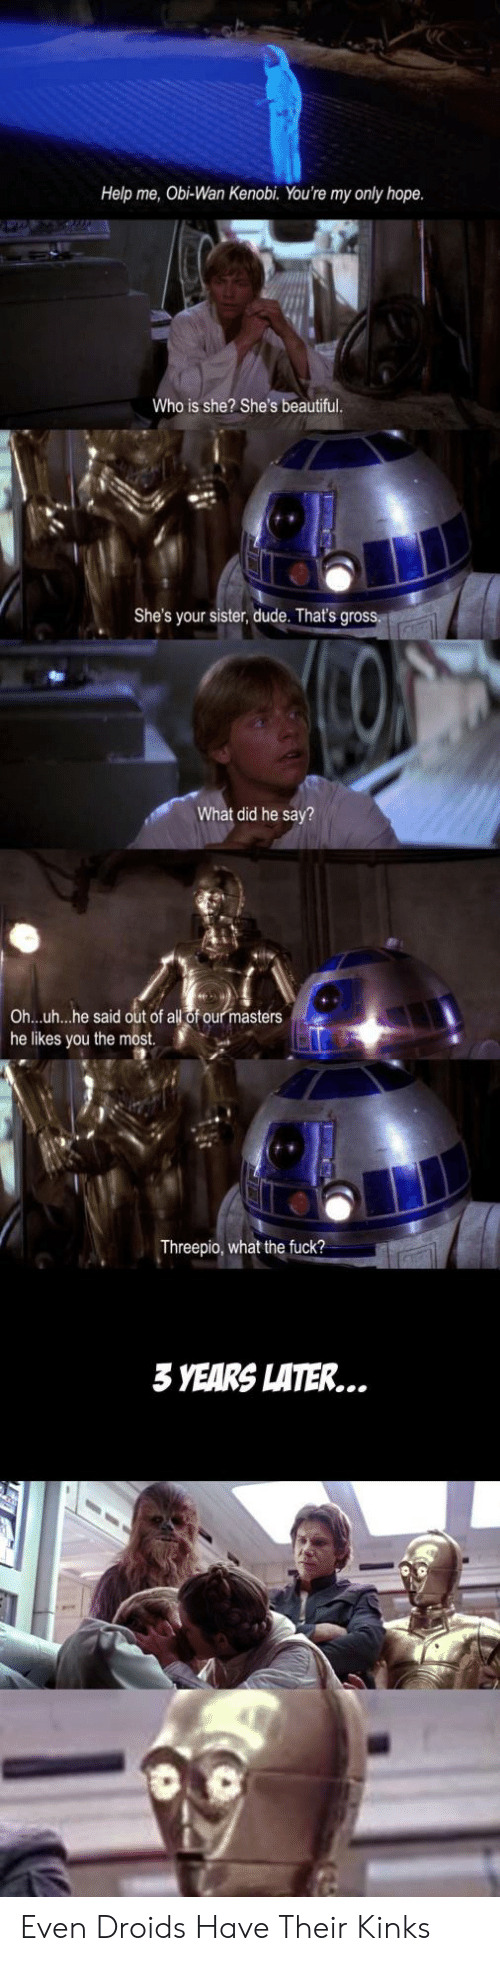 shes beautiful: Help me, Obi-Wan Kenobi. You're my only hope  Who is she? She's beautiful  She's your sister, dude. That's gross.  What did he say?  all of our masters  Ohuh...he said out of  he likes you the most.  Threepio, what the fuck?  3 YEARS LATER... Even Droids Have Their Kinks